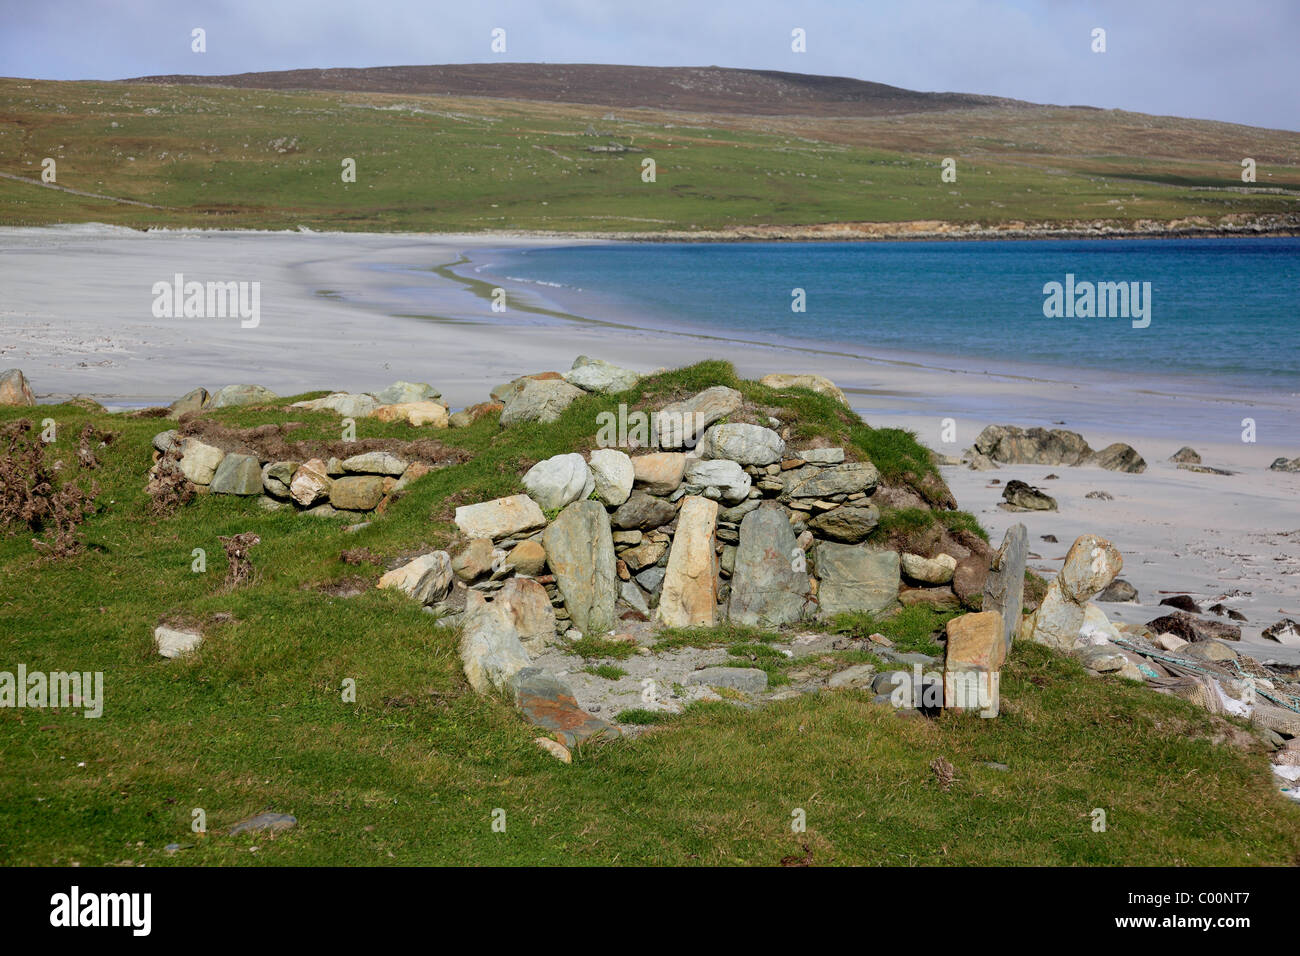 Hearth abutting the Norse longhouse excavated at Easting, Sandwick Bay, Unst, Shetland - Stock Image